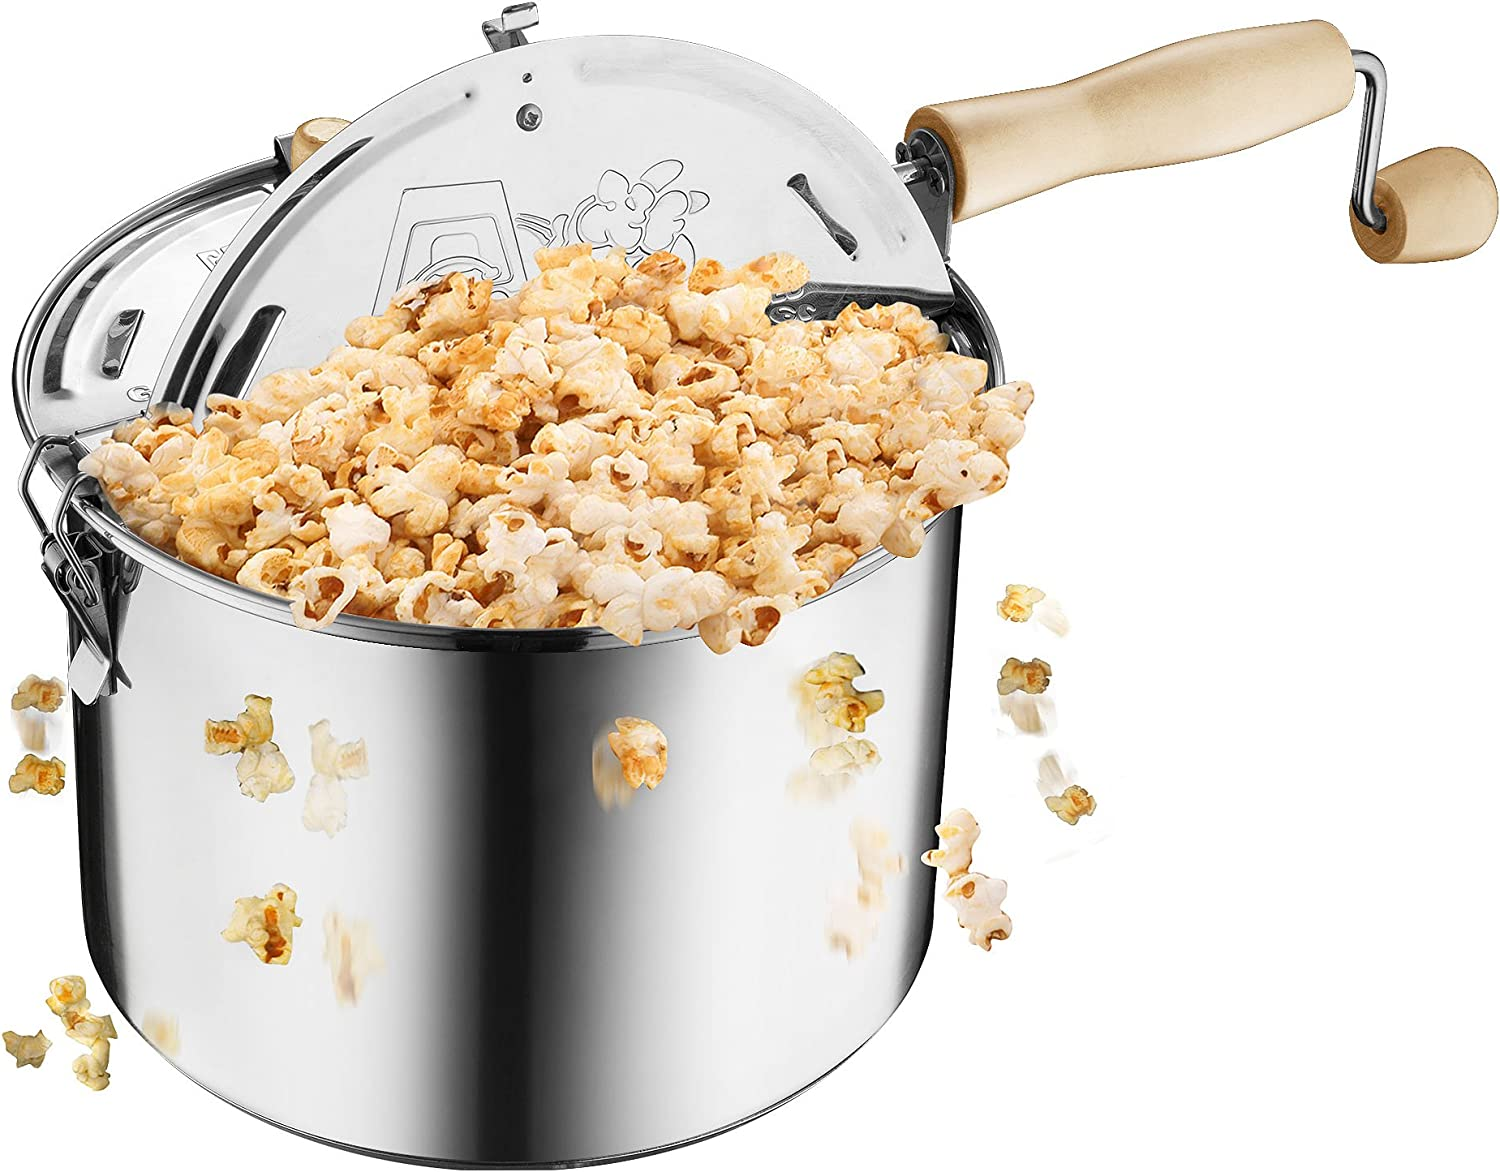 Amazon.com: Great Northern Popcorn Original Stainless Steel Stove Top  6-1/2-Quart Popcorn Popper: Electric Popcorn Poppers: Kitchen & Dining